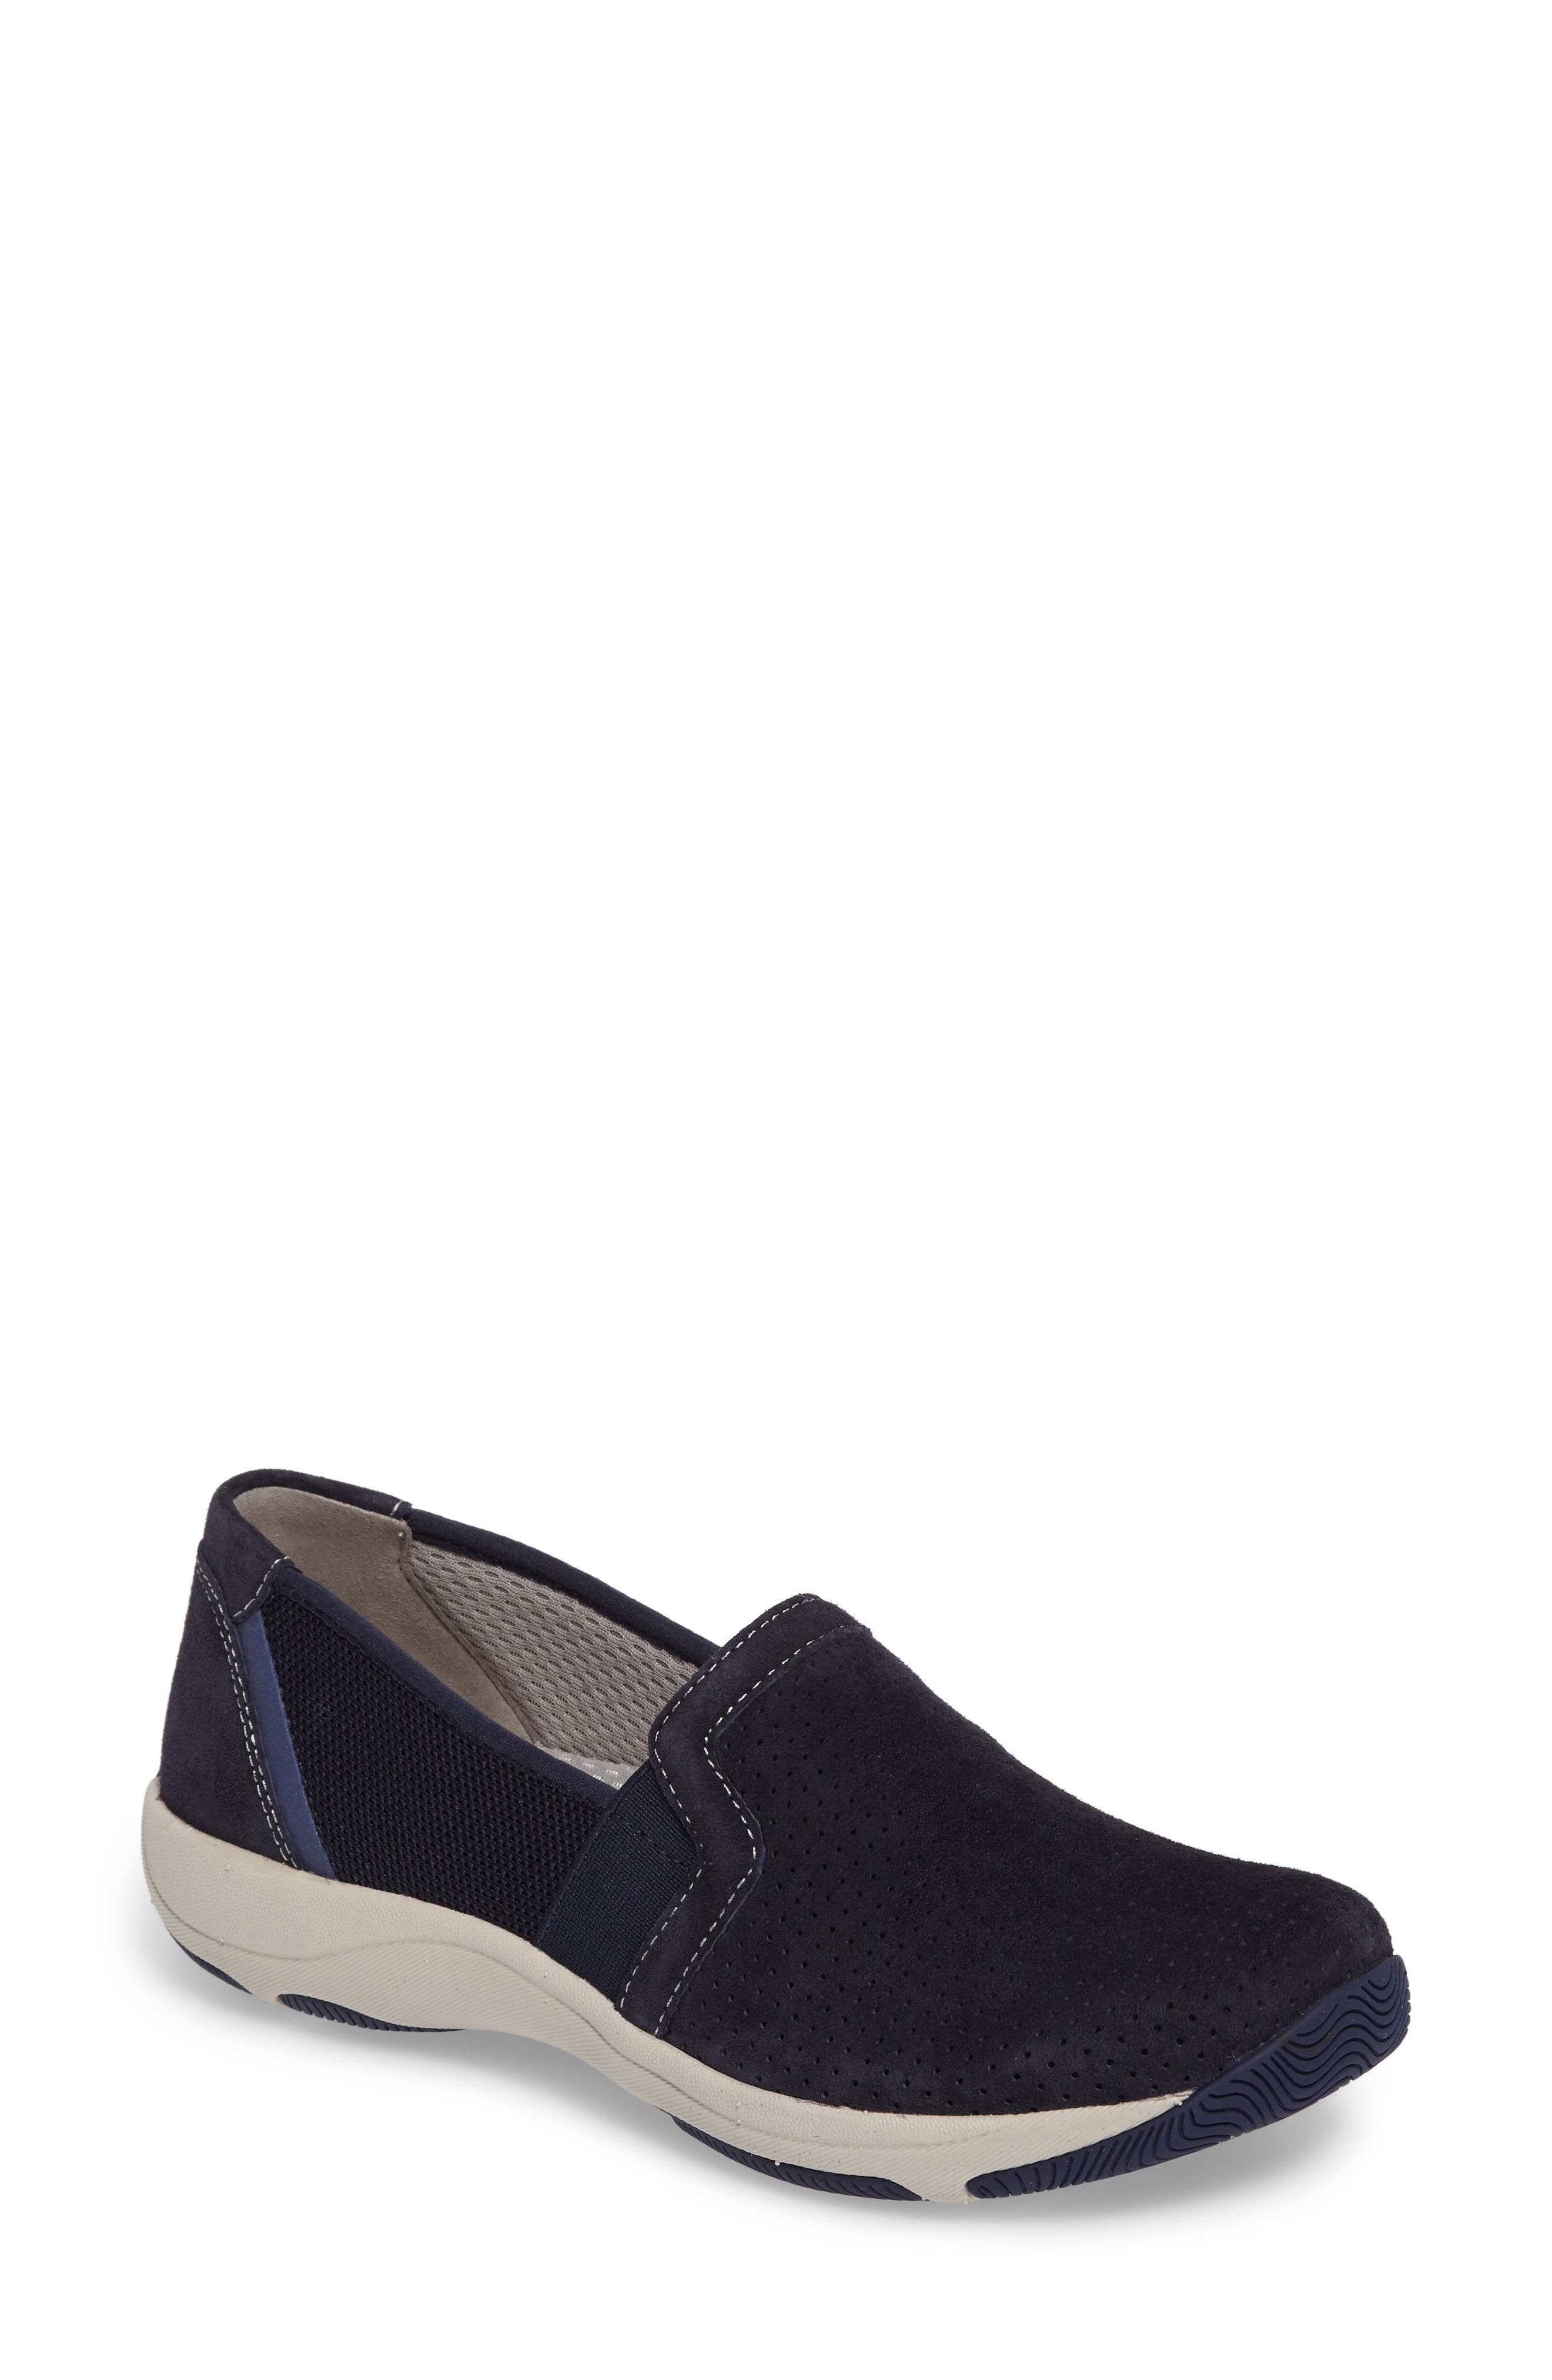 Halifax Collection Halle Slip-On Sneaker,                             Main thumbnail 3, color,